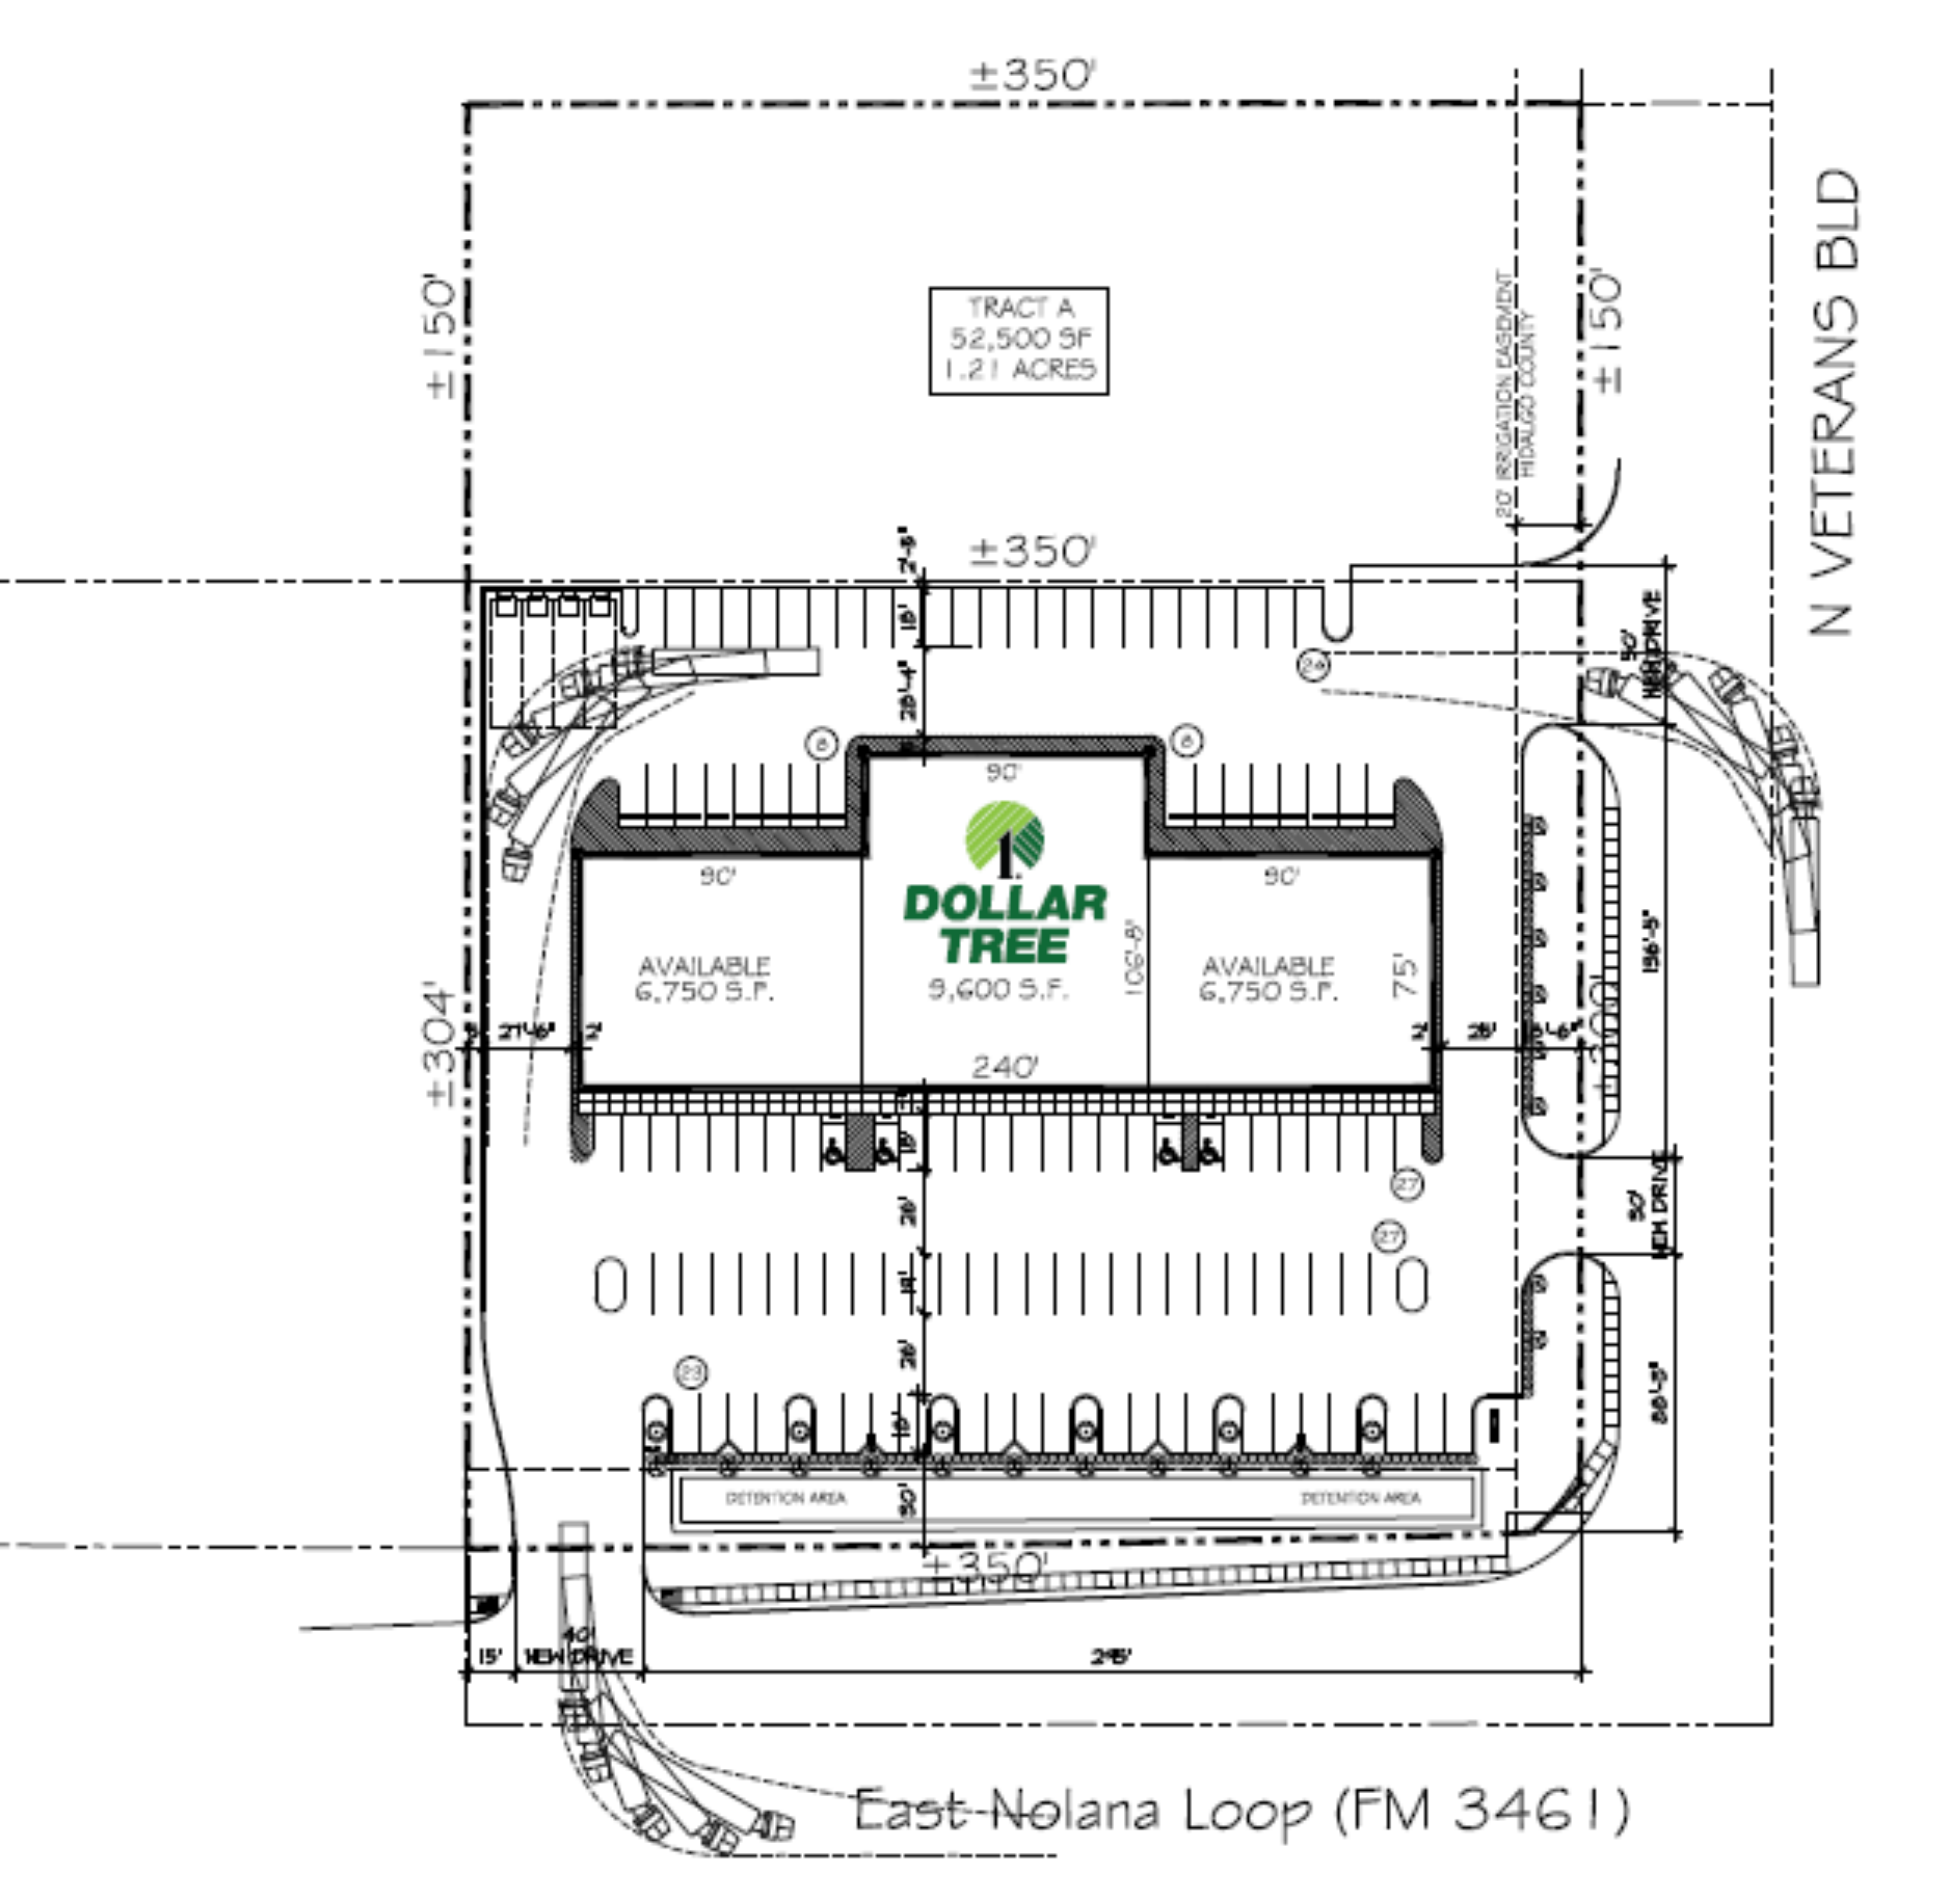 Dollar Tree Plaza - North Pharr: site plan